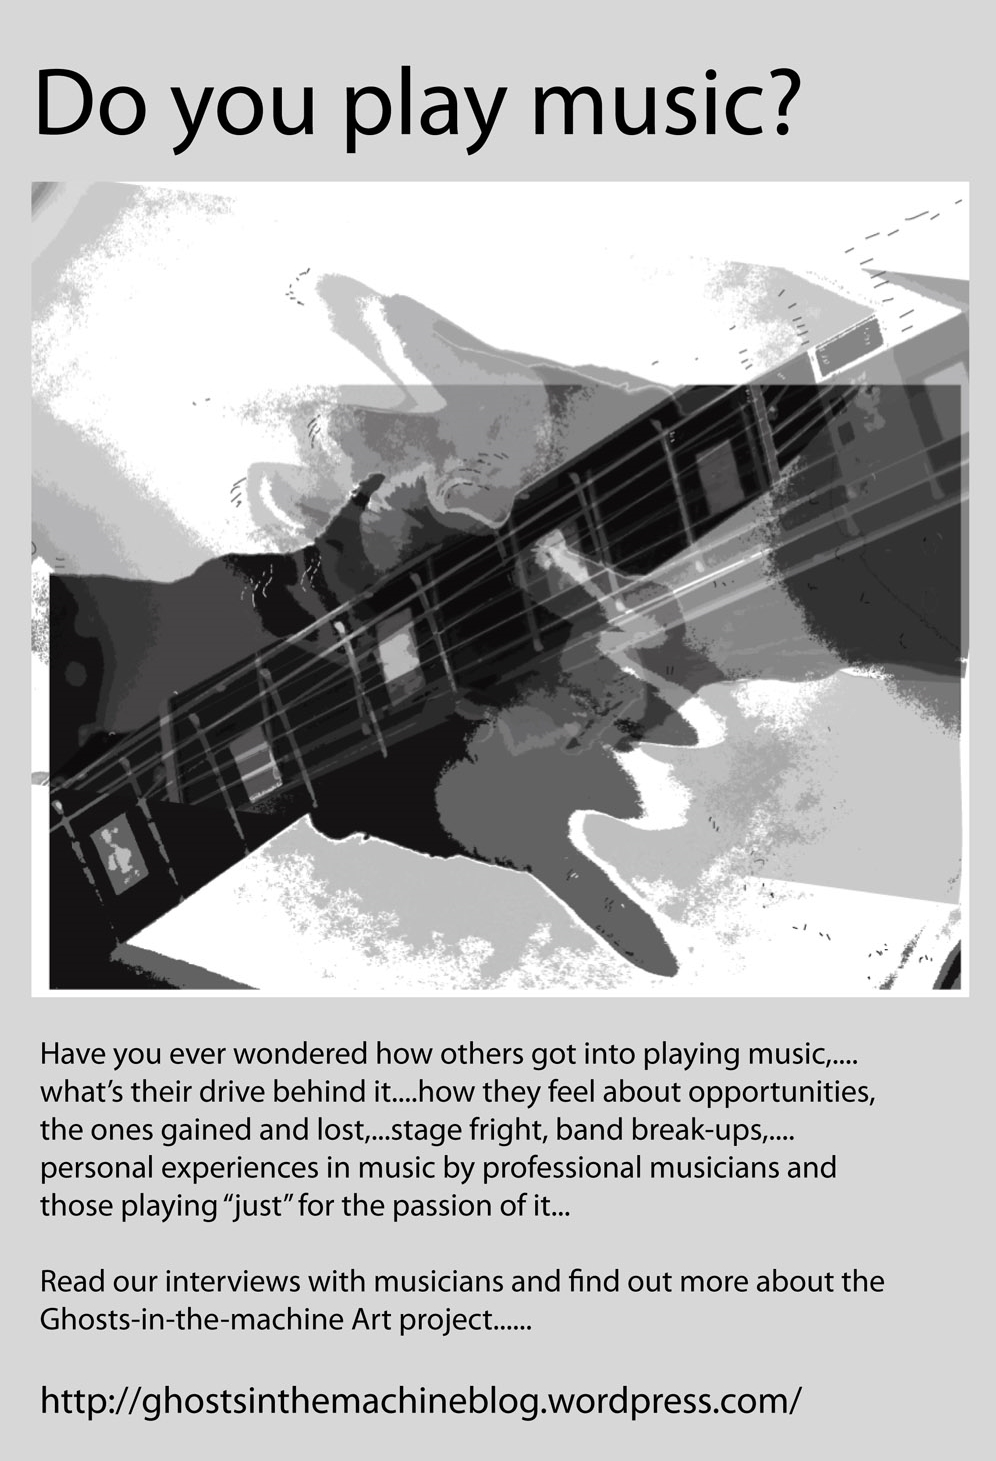 playing music poster 2 copy.jpg